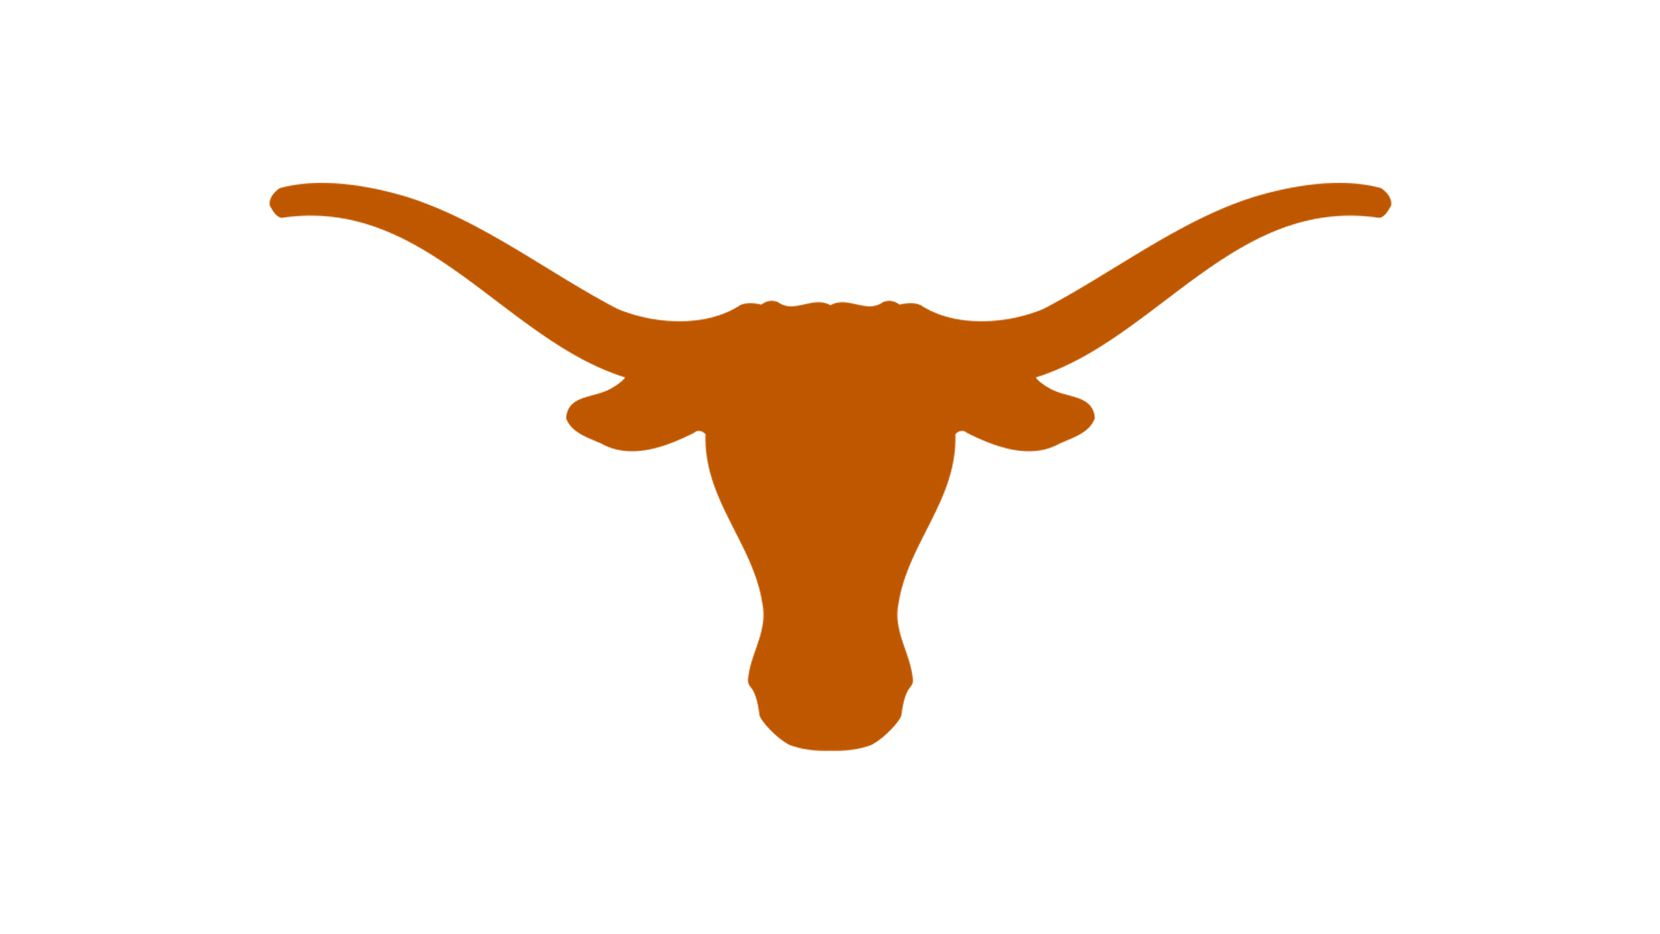 The Texas Longhorns logo.